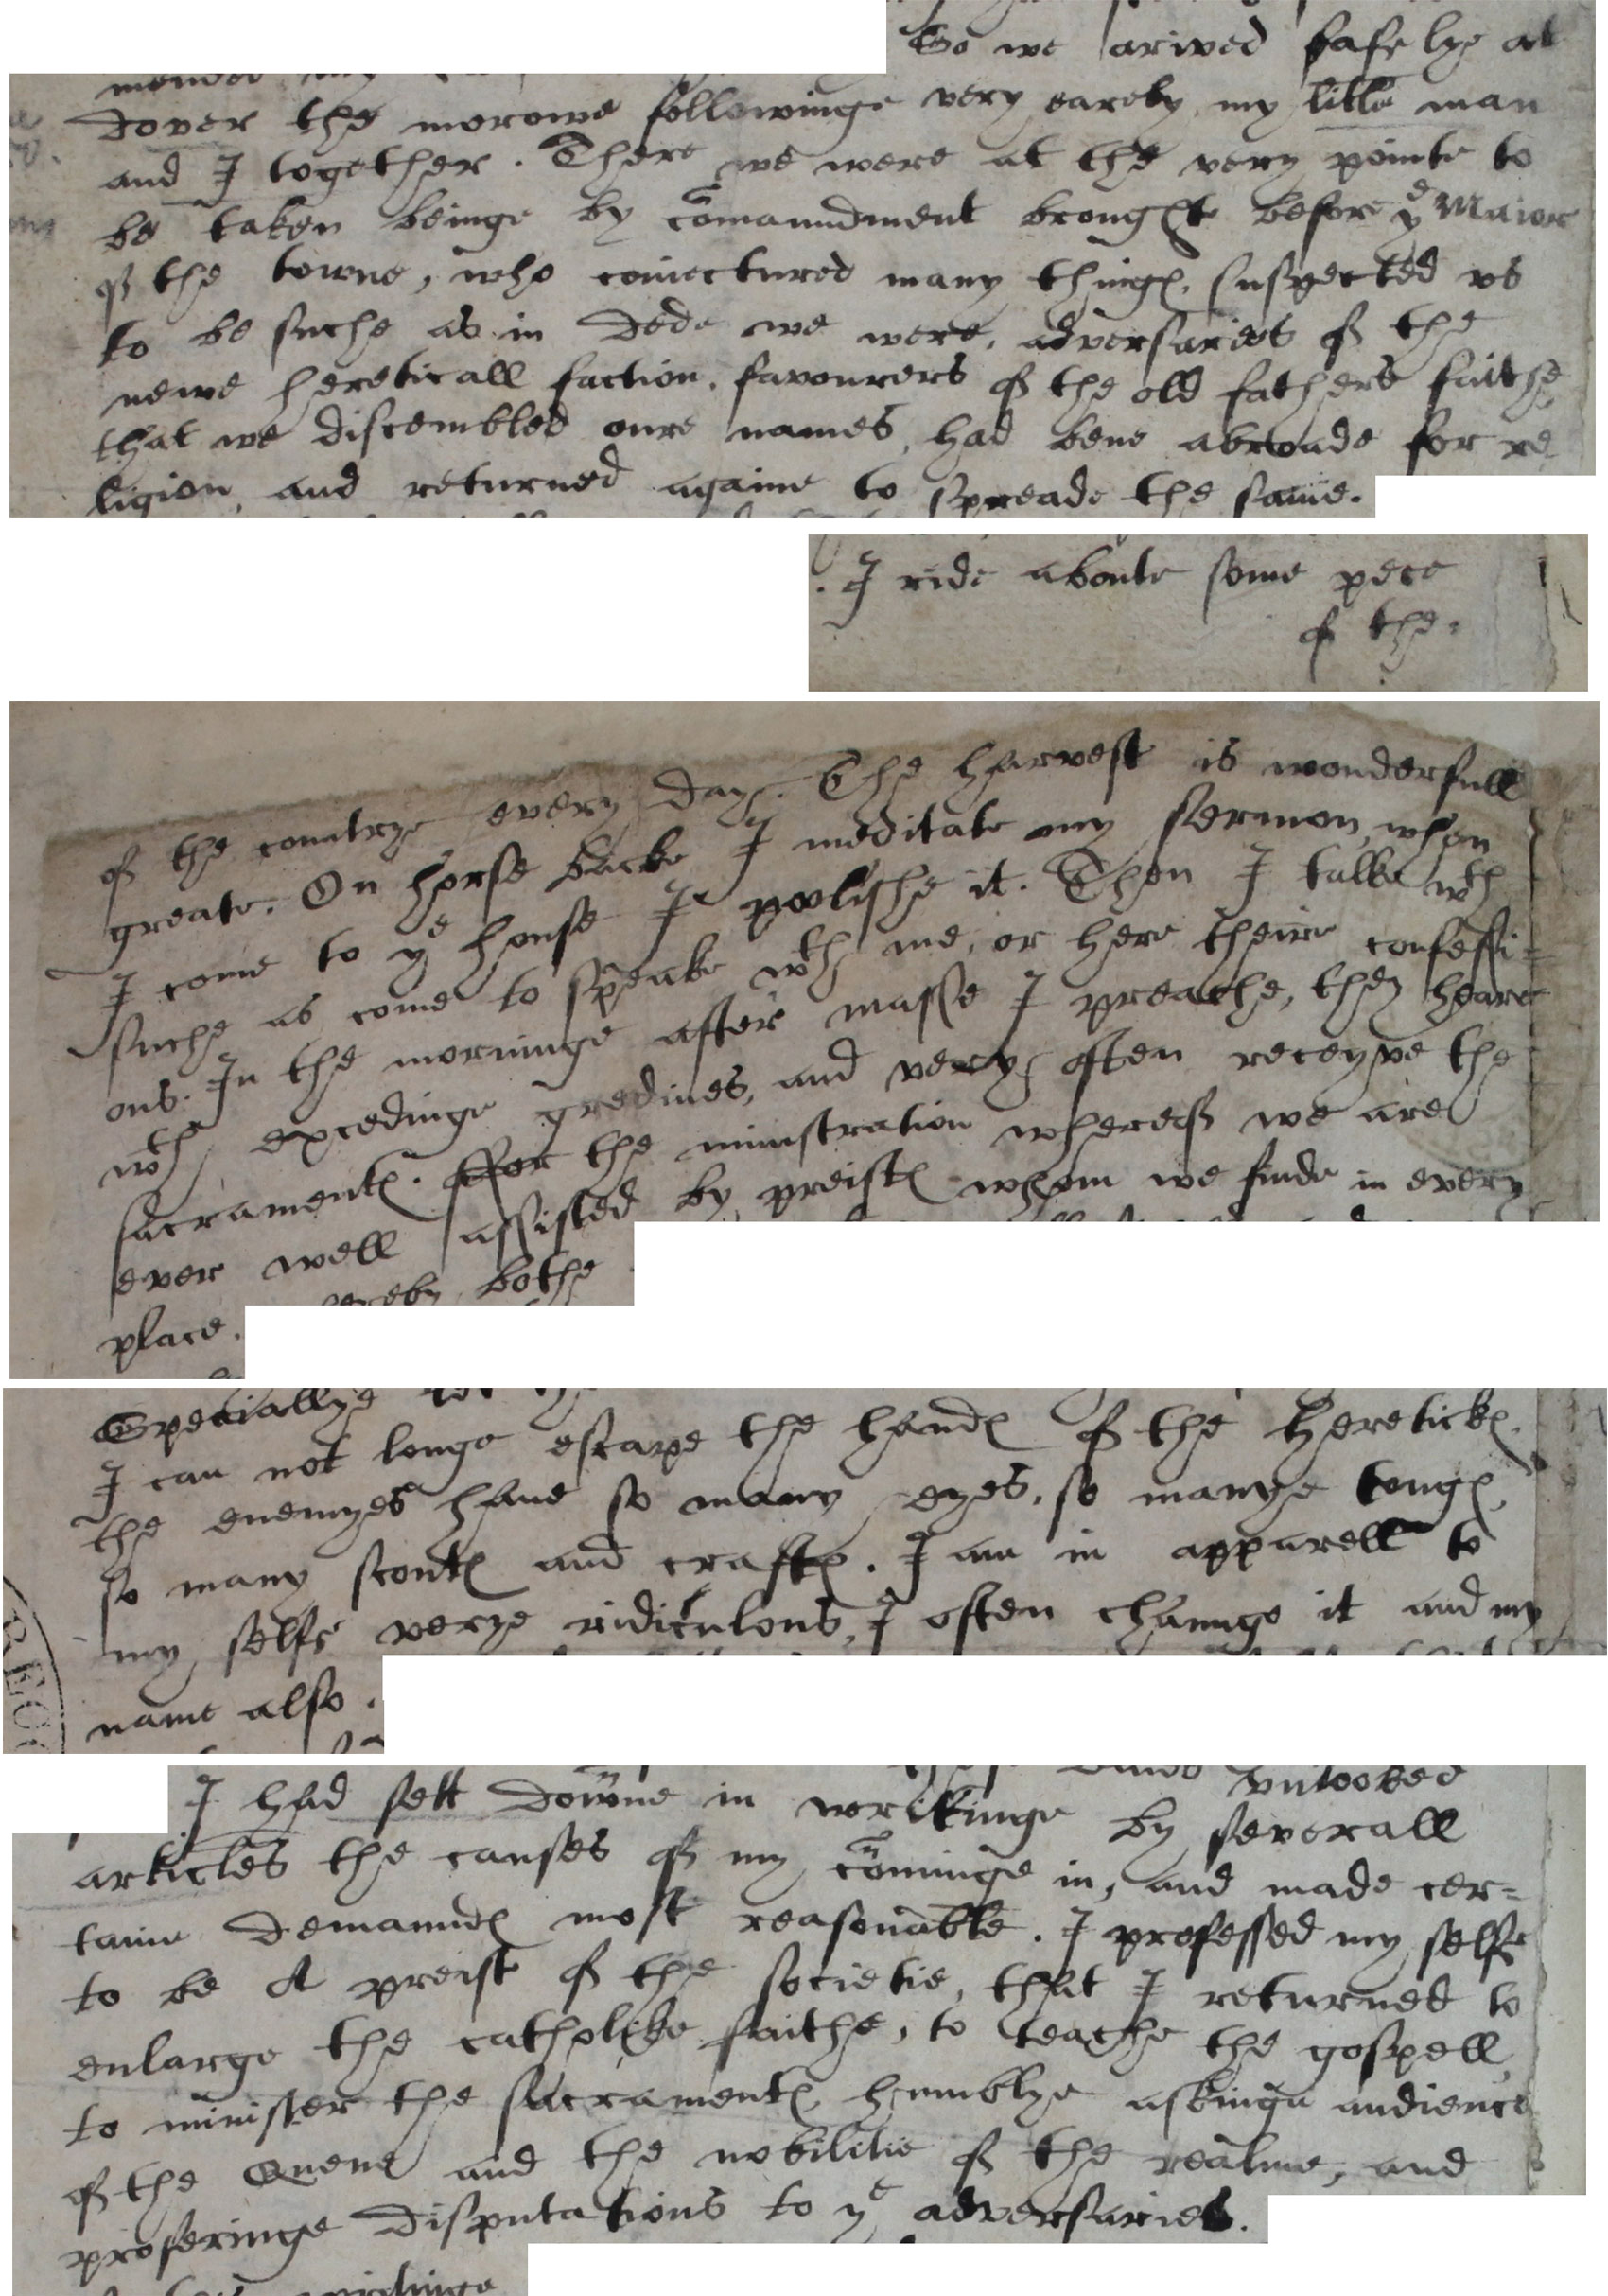 Letter from Edmund Campion to a friend (possibly Dr Allen), 1580 (SP 15/27B f117)